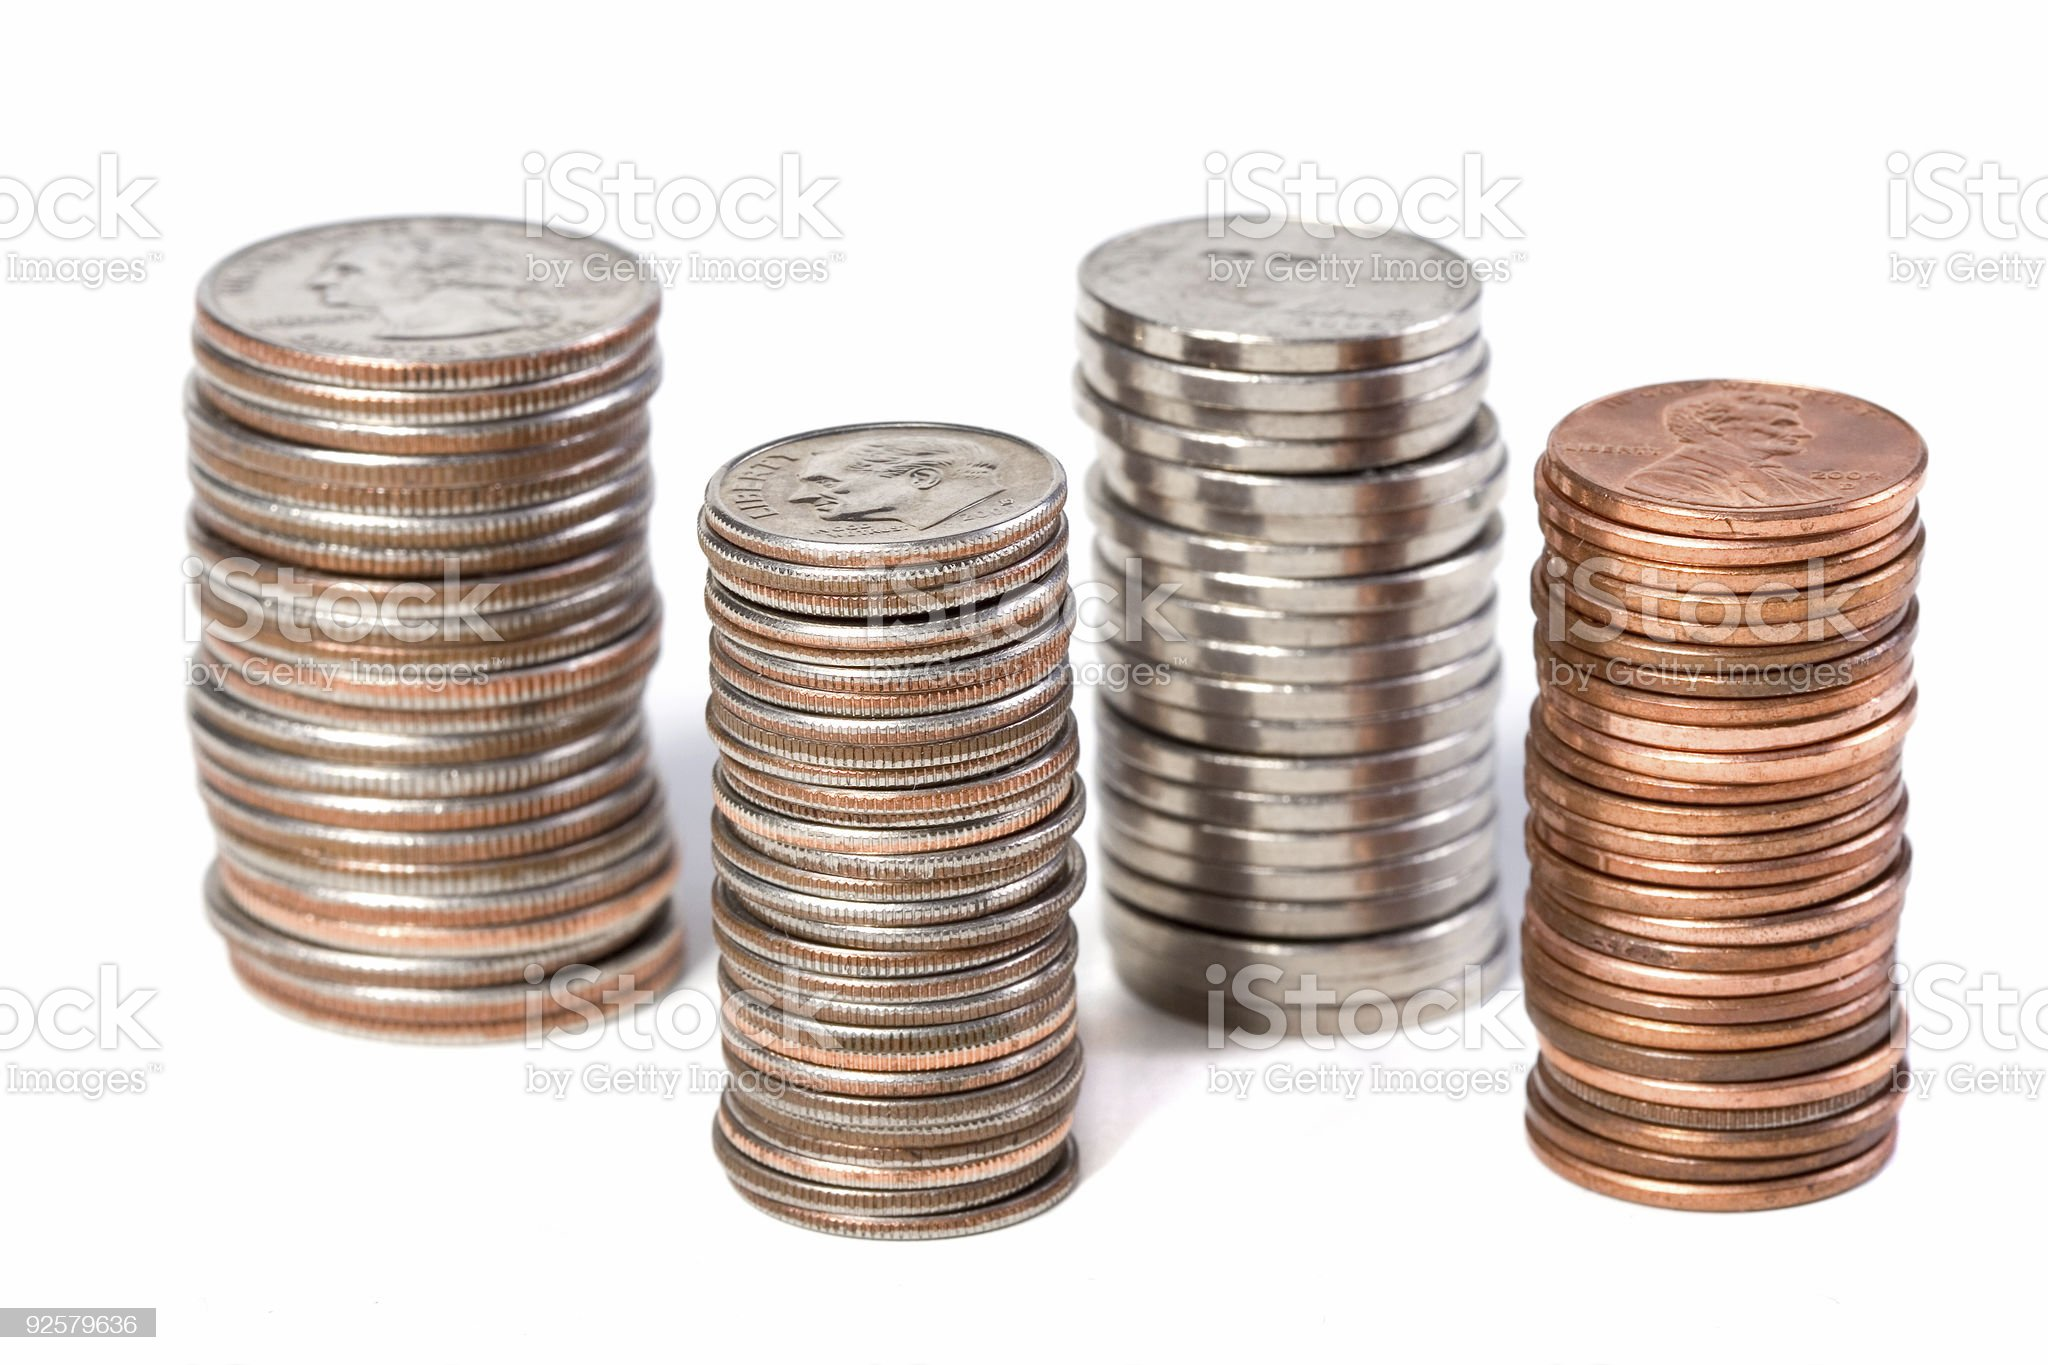 Offset Coin Stacks royalty-free stock photo